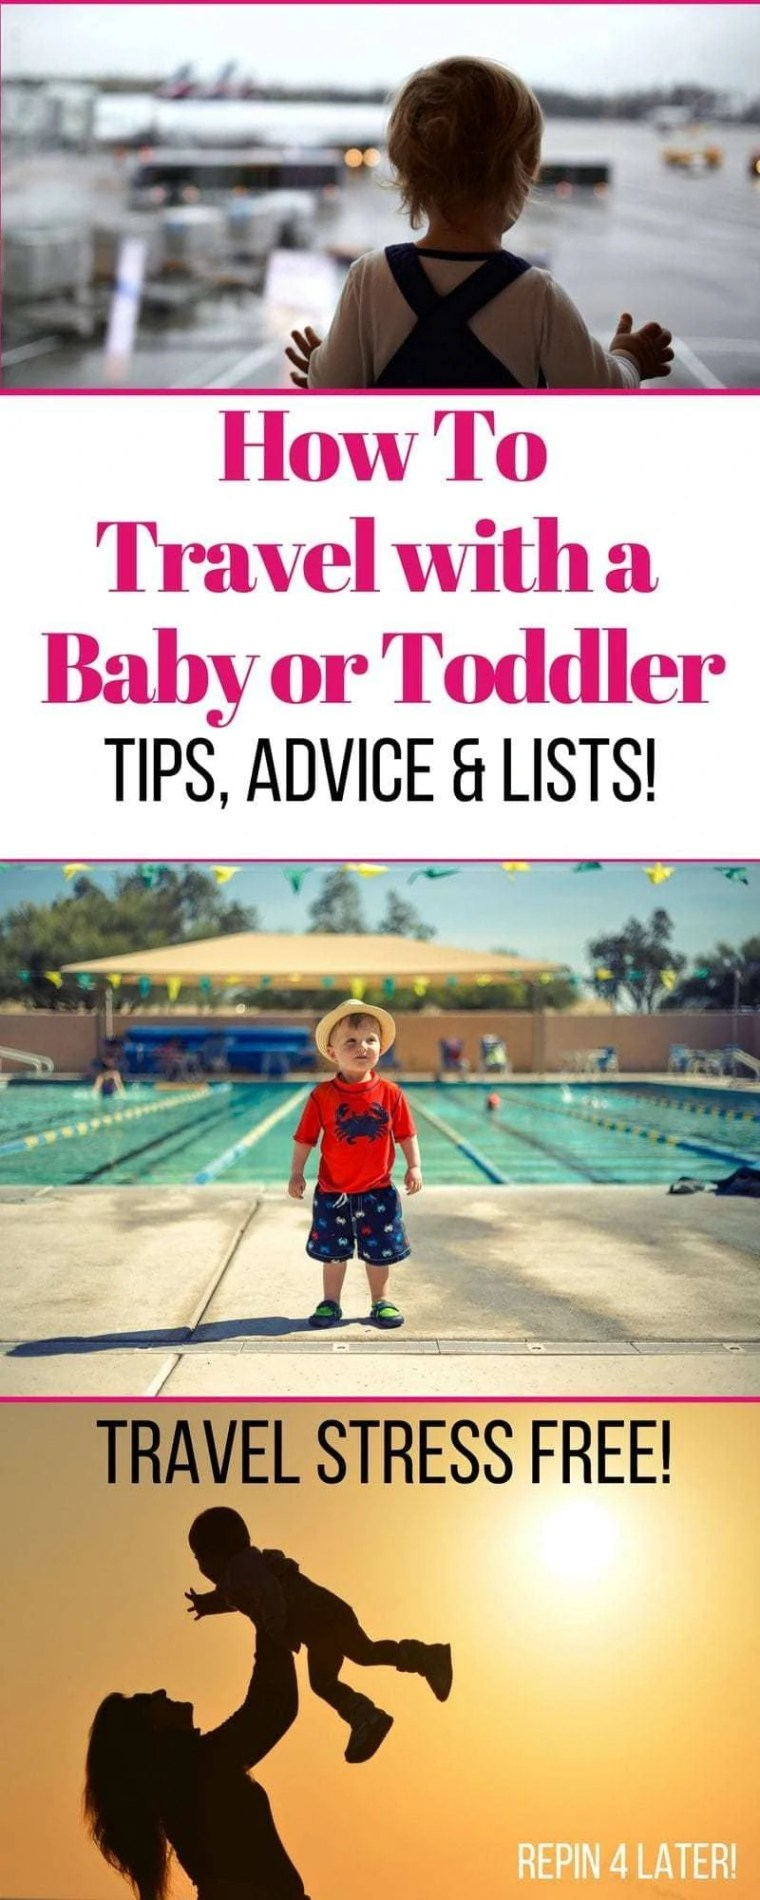 Traveling with a baby doesn't need to be stressful! Follow these easy tips and advice to make the experience stress free and enjoyable for you and baby or toddler!